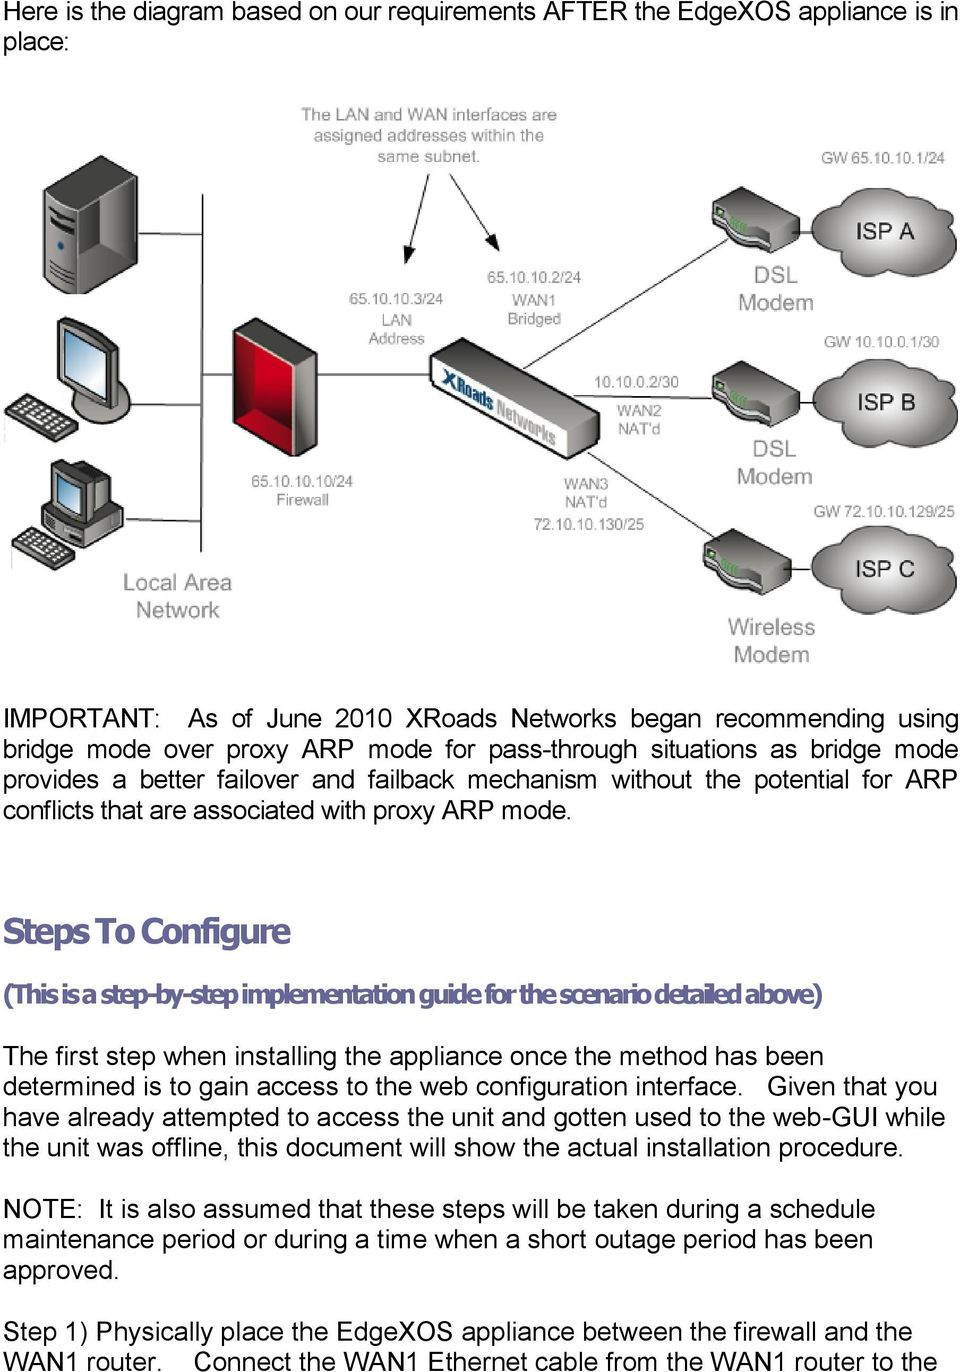 Steps To Configure (This is a step-by-step implementation guide for the scenario detailed above) The first step when installing the appliance once the method has been determined is to gain access to